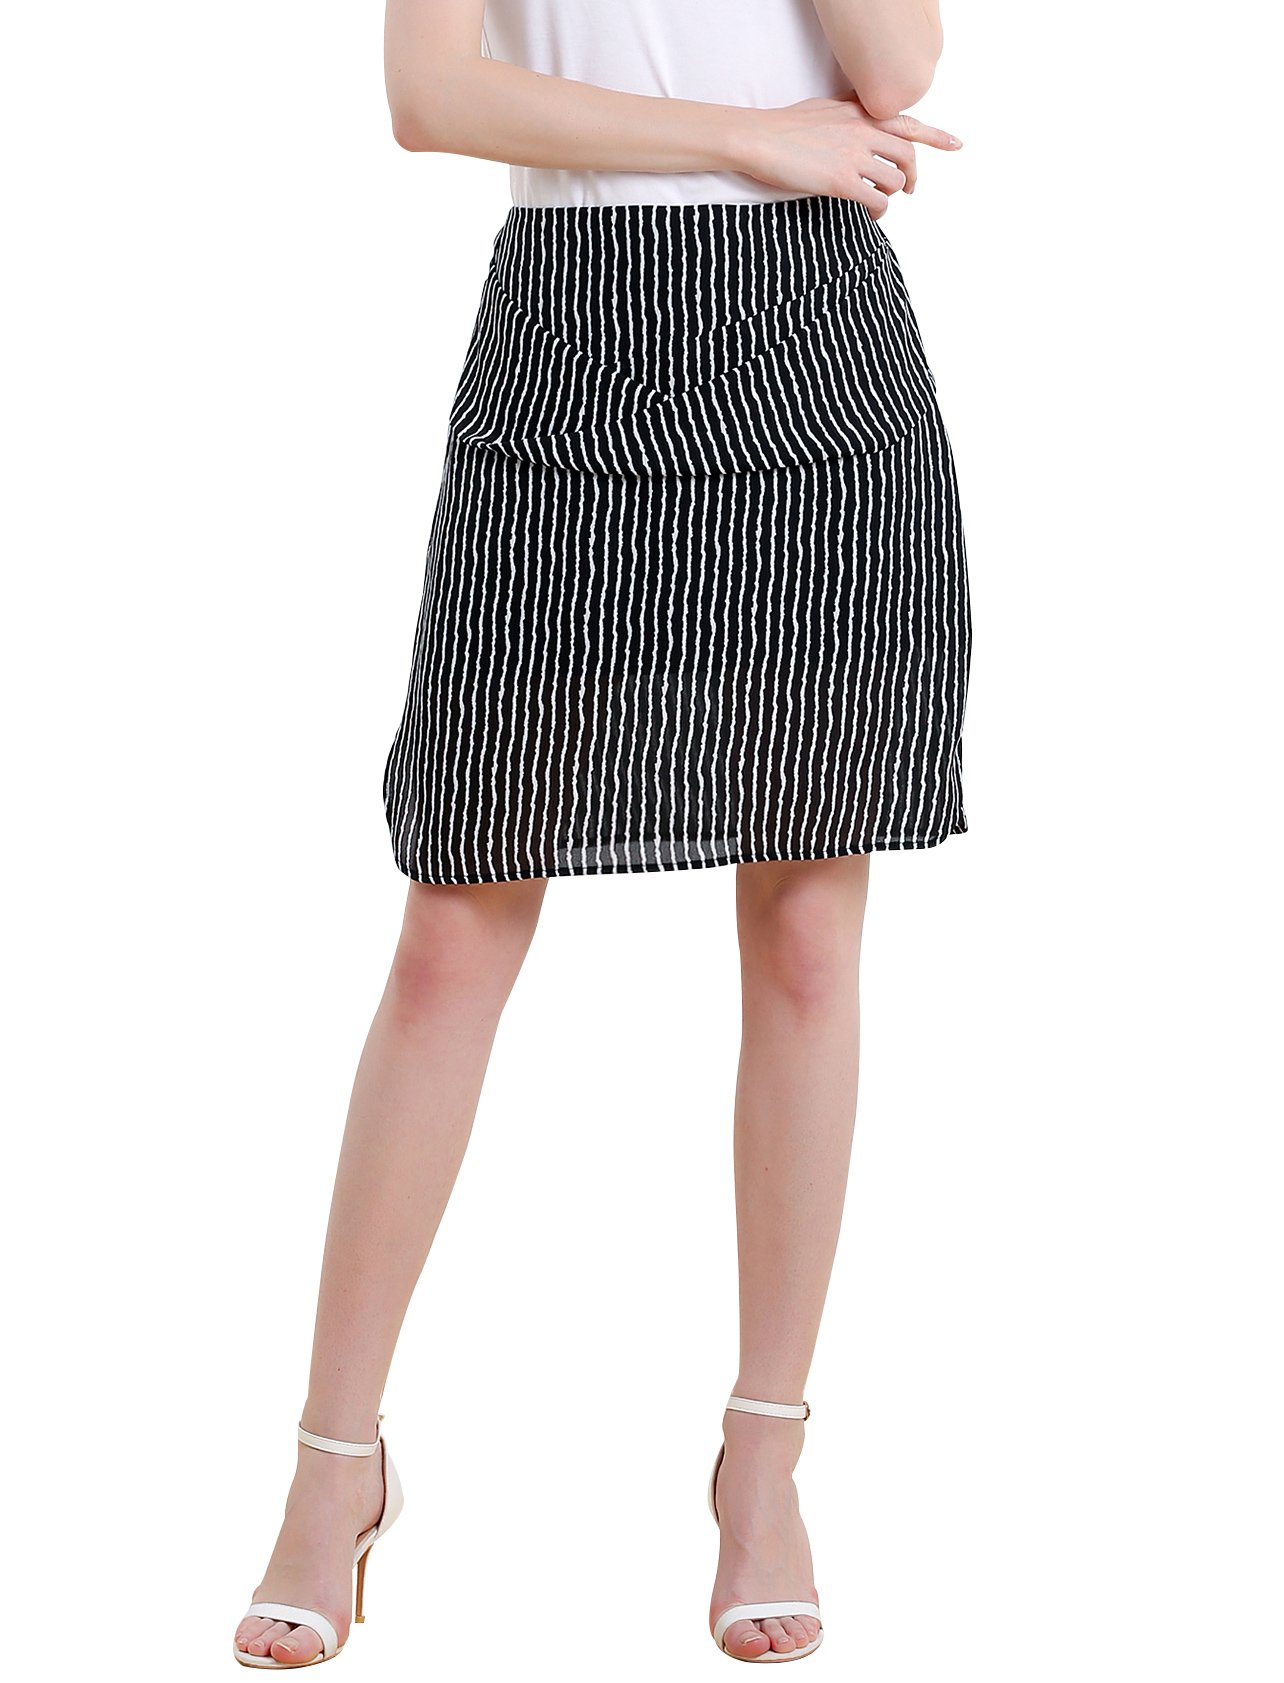 Women Striped Split Mini Skirt Crossed Front Casual A-line Skirt with Zipper XL by Vero Viva (Image #1)